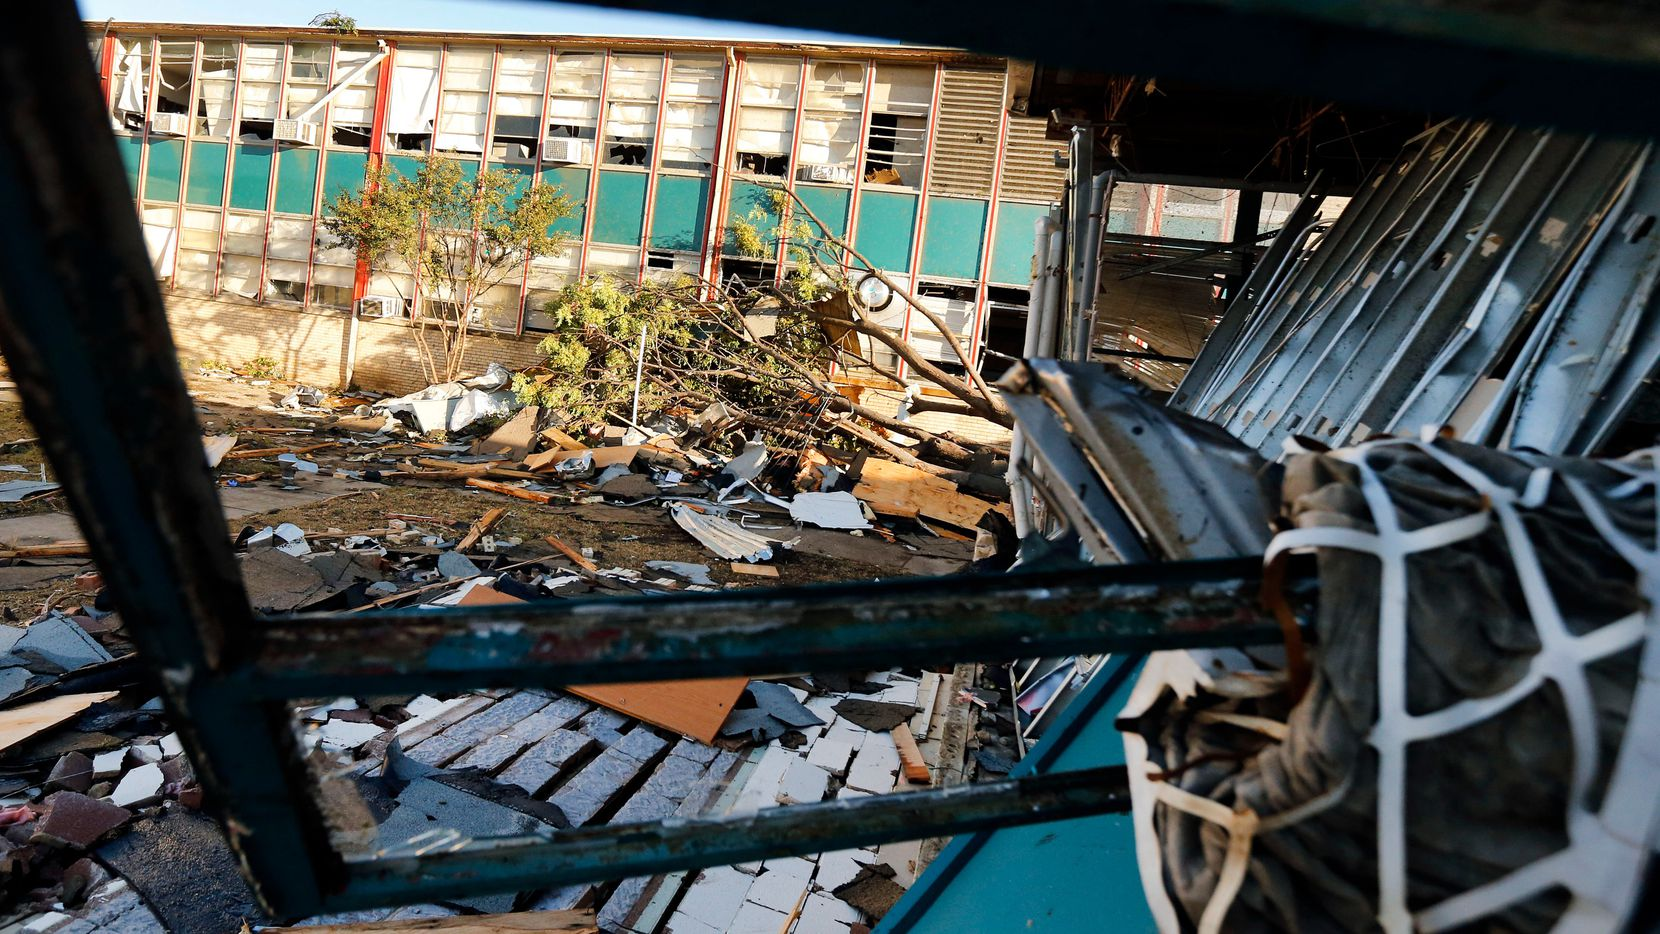 A trio of DISD schools, including Cary Middle School, were hit by the tornadoes in late October.